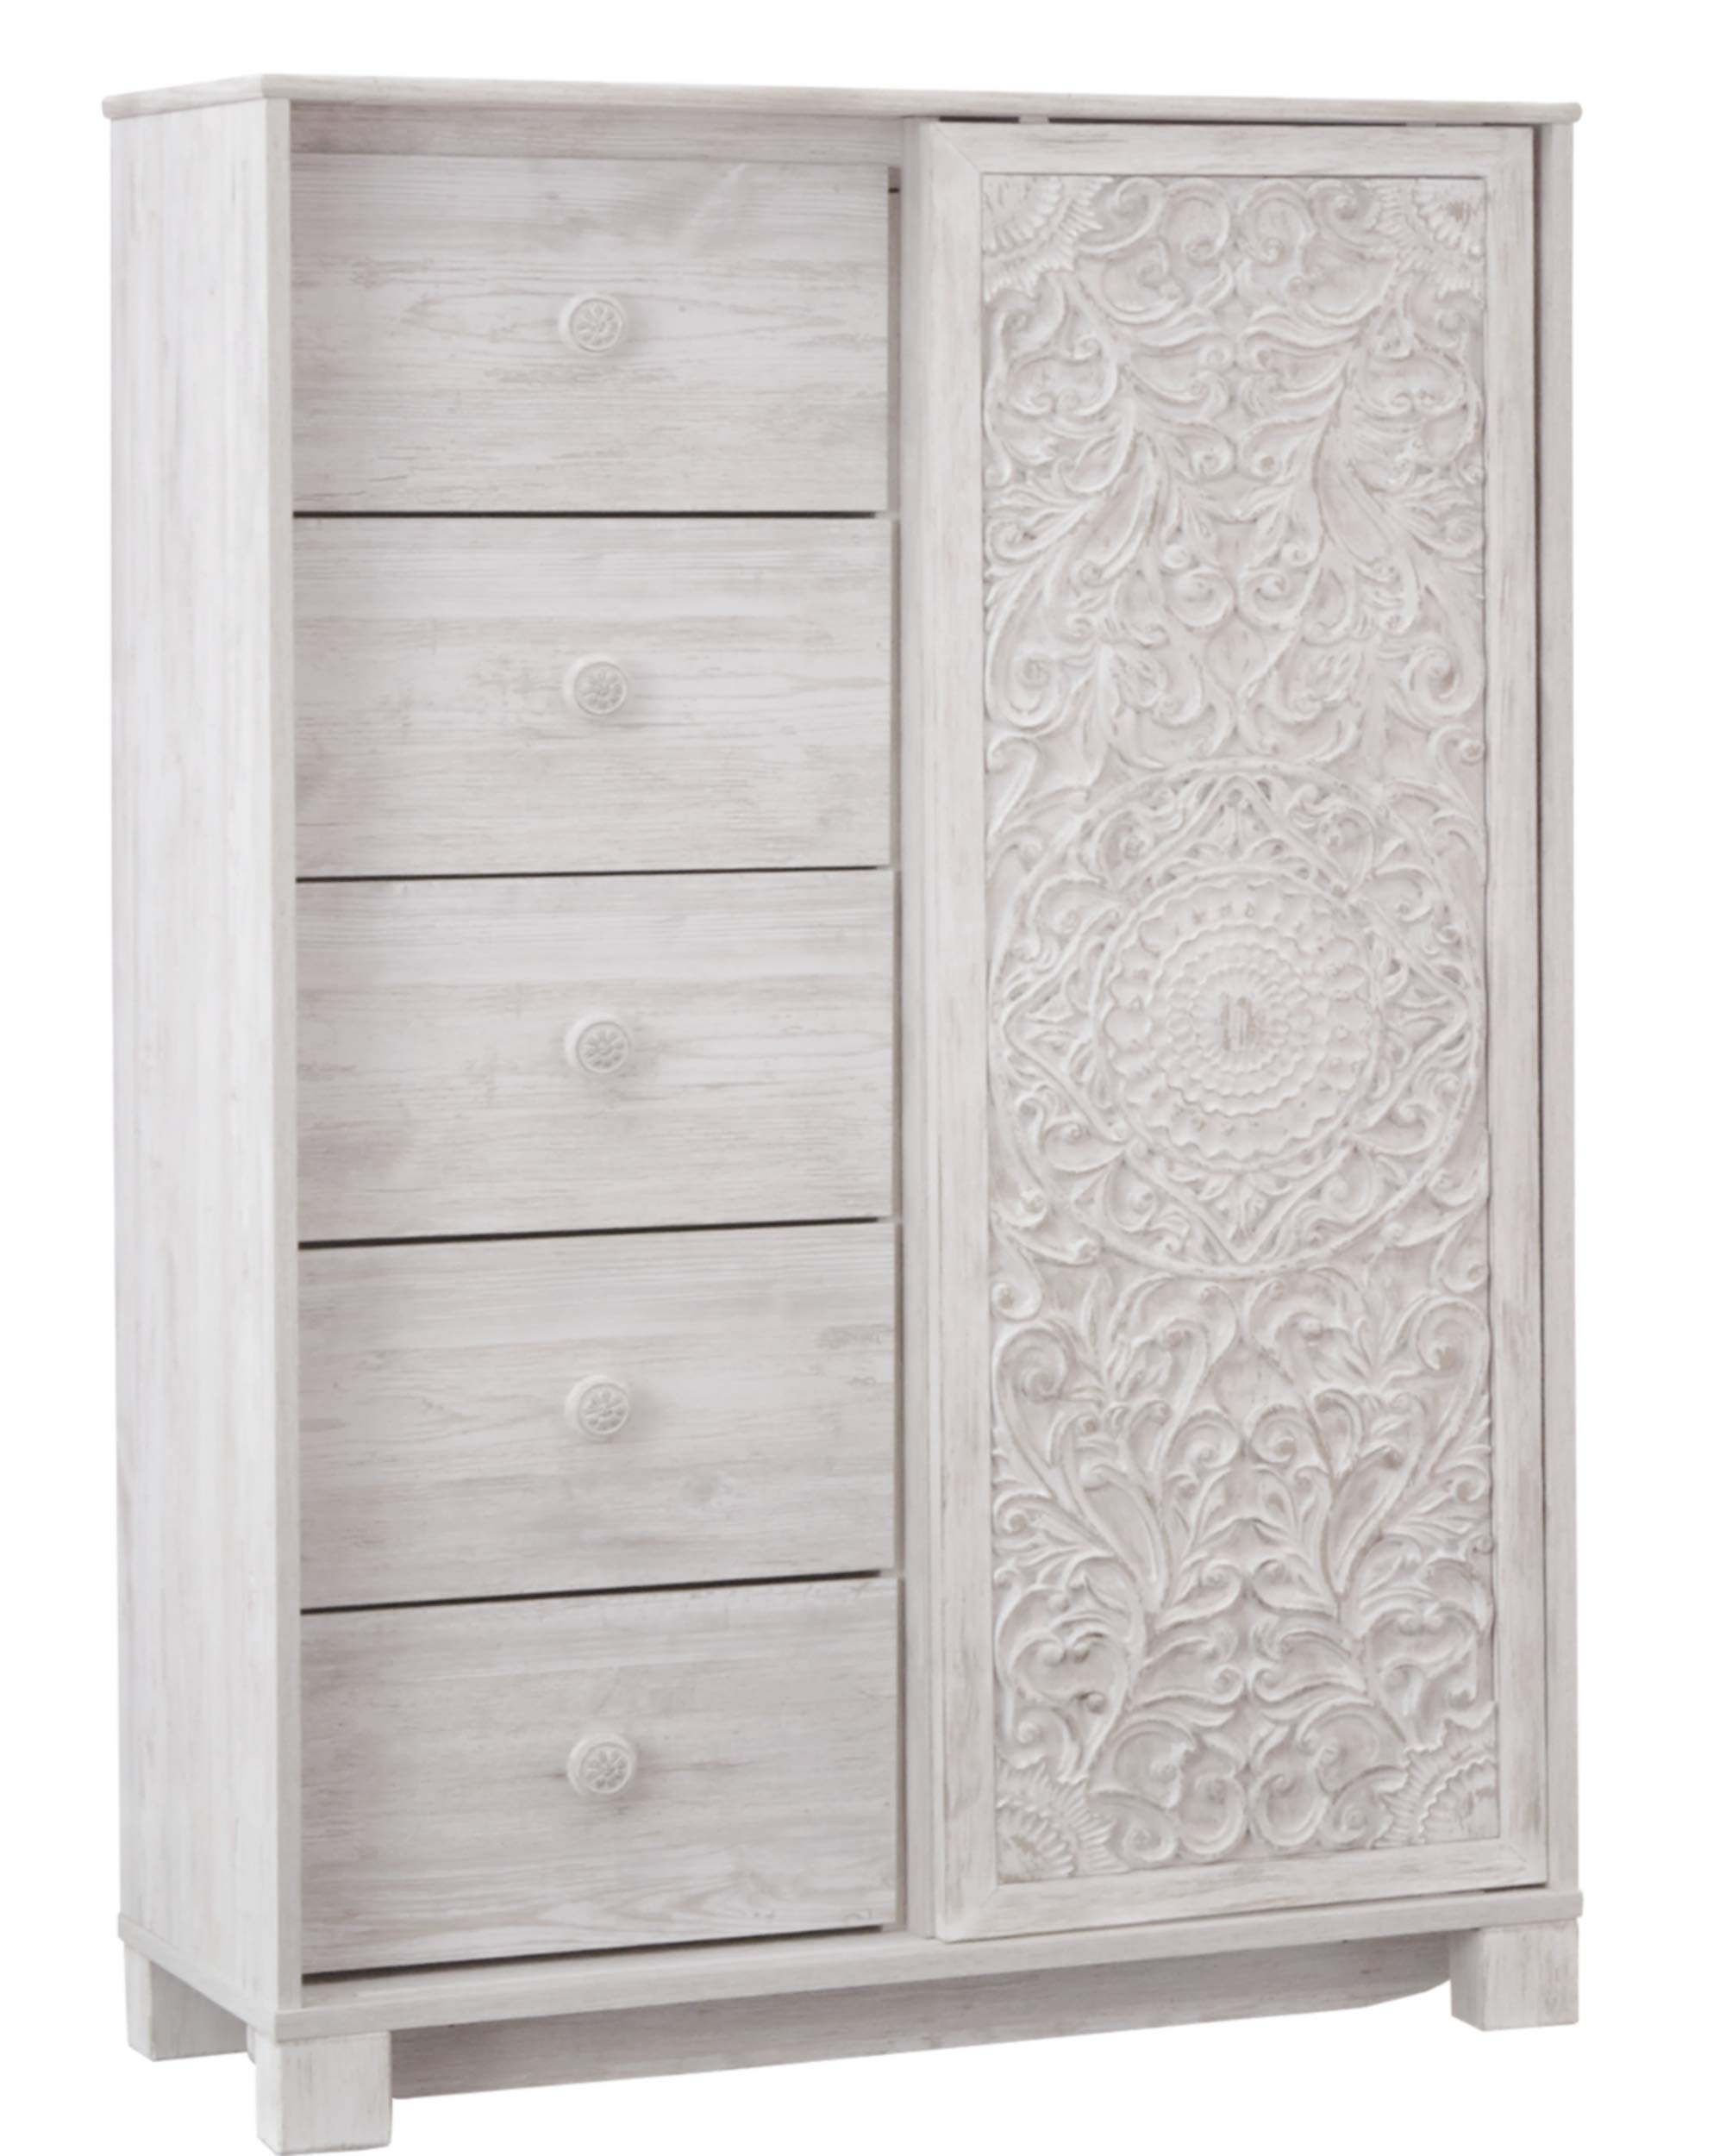 Signature Design by Ashley B181-48 Paxberry Dressing Chest White Wash by Signature Design by Ashley